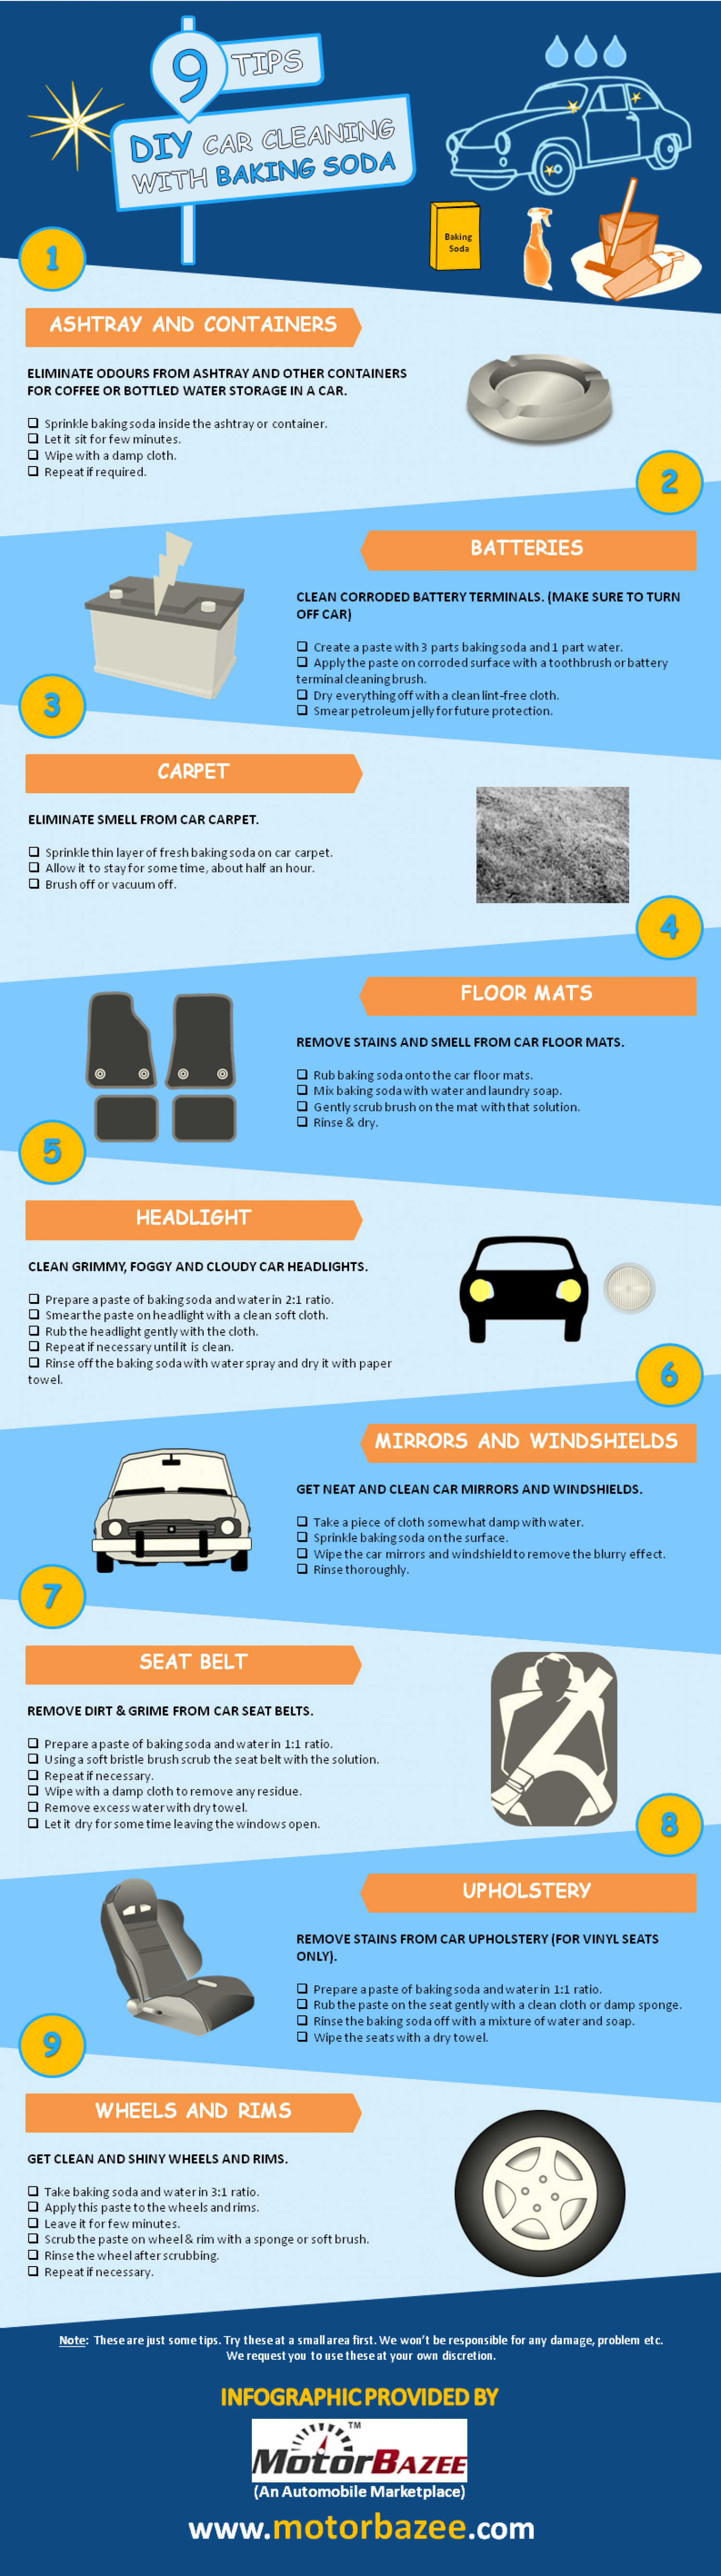 baking soda for car cleaning tips infographic motorbazee